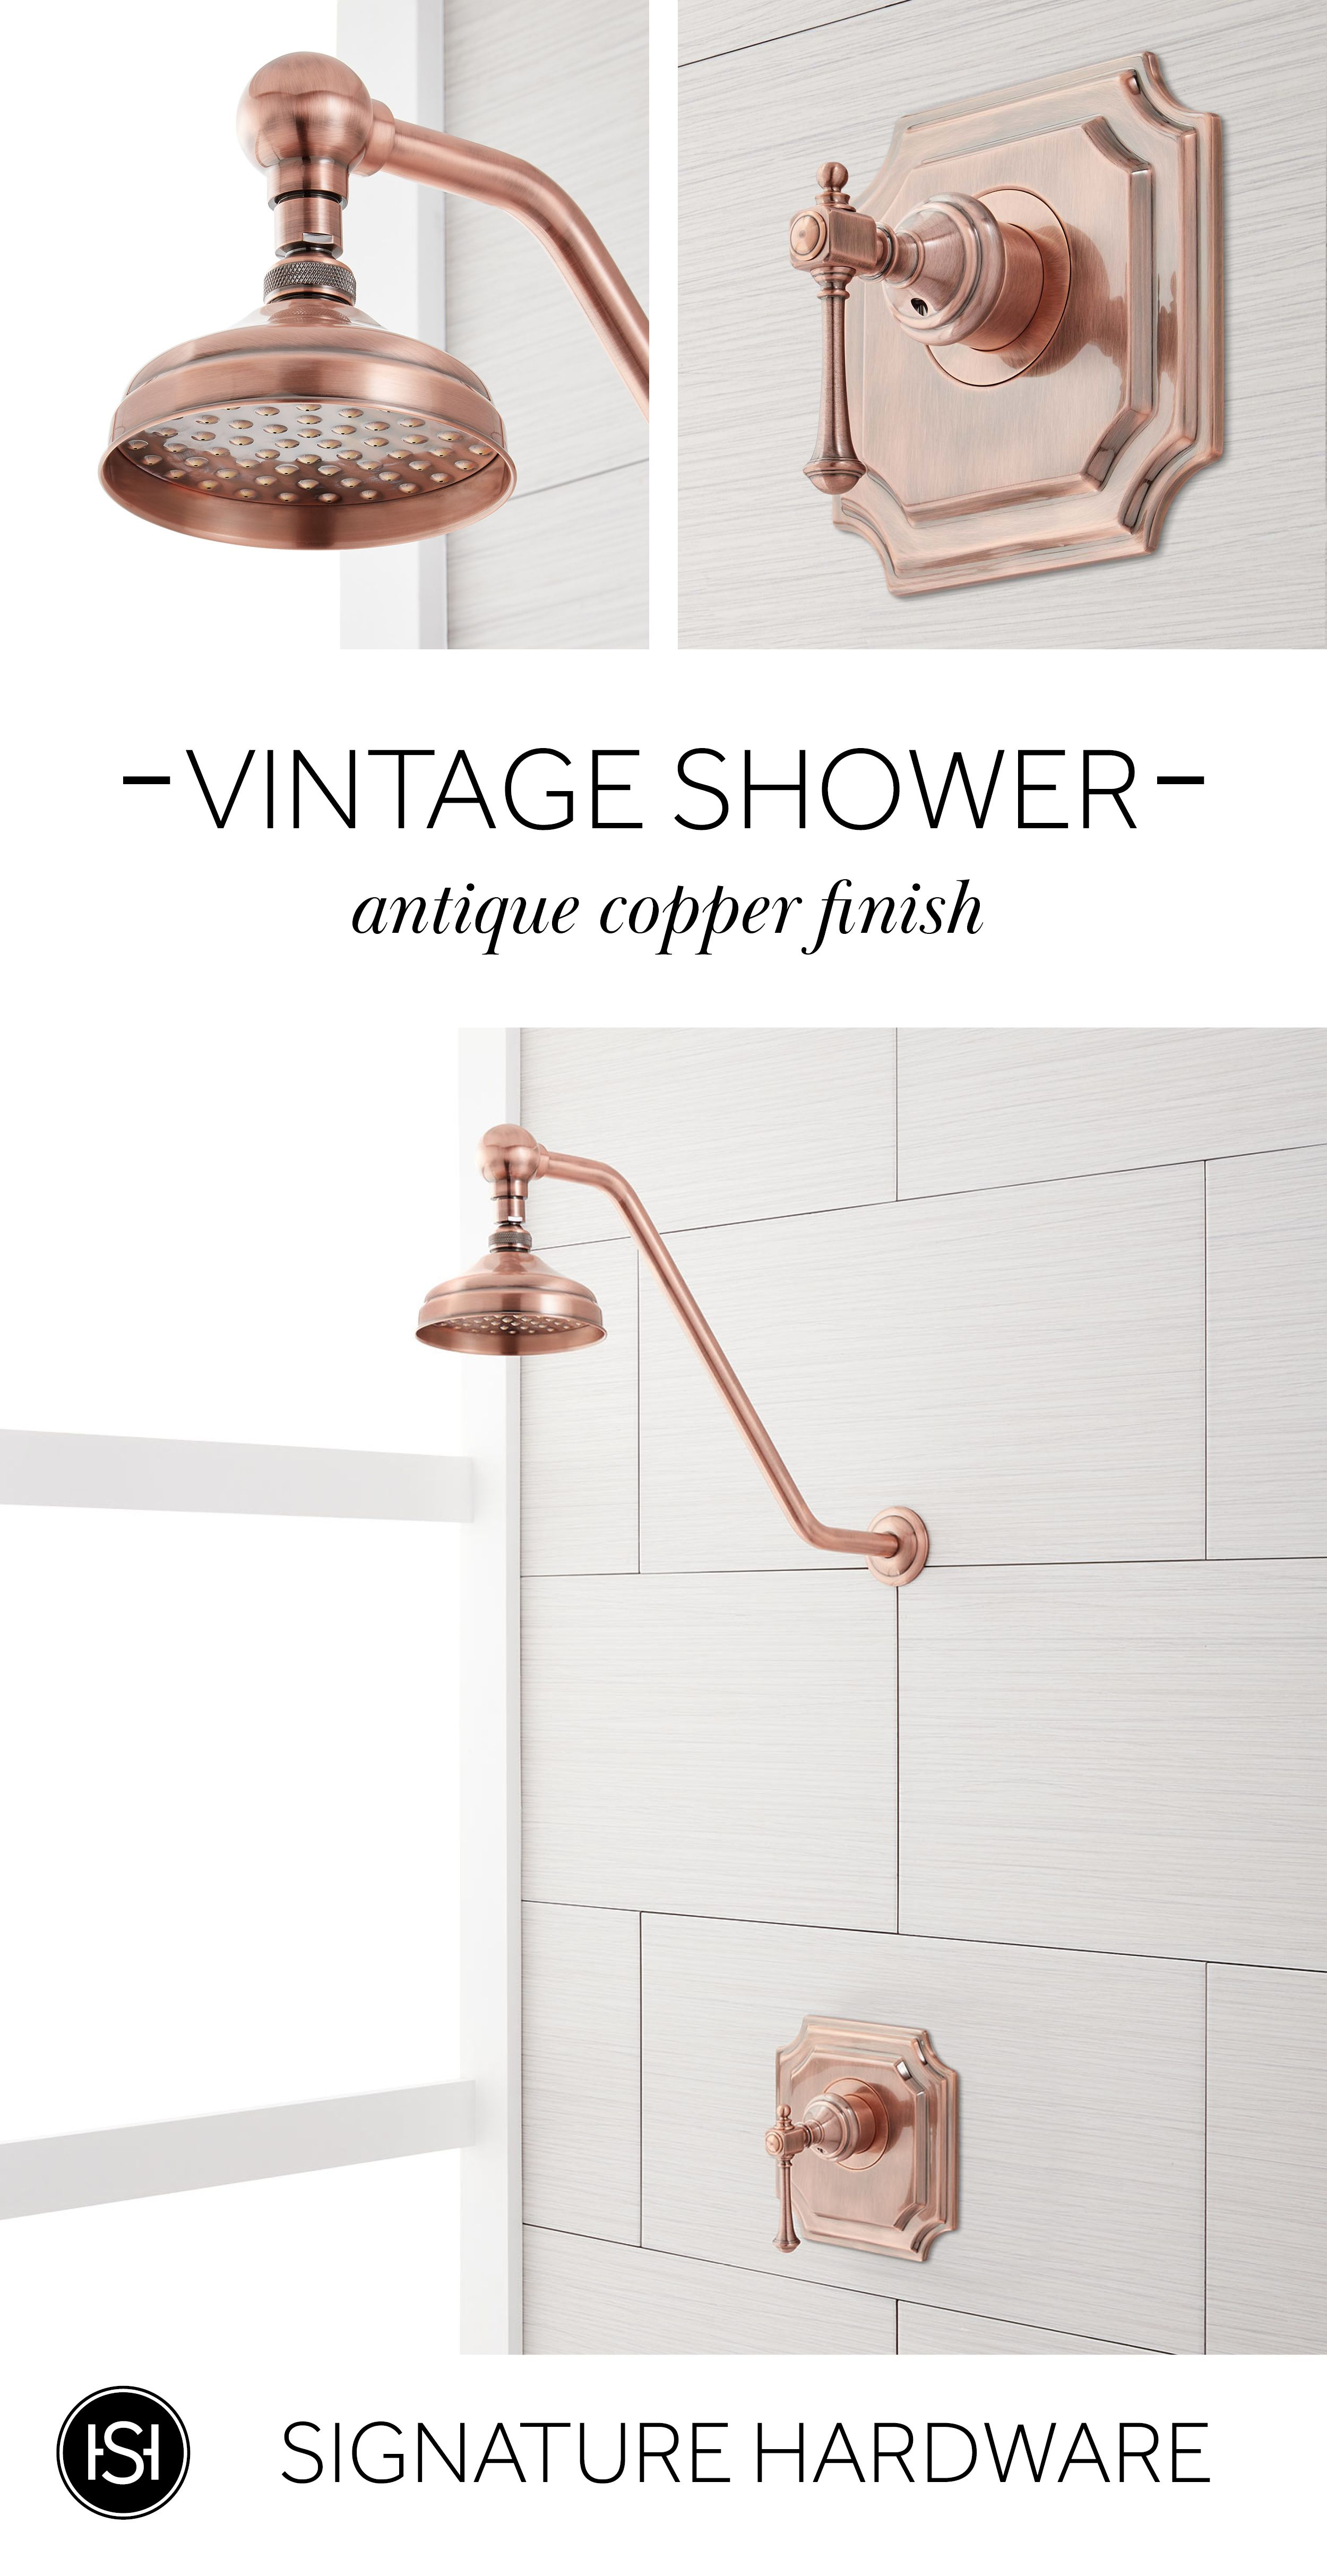 Our Vintage Shower Set Is The Perfect Luxurious Addition To Any